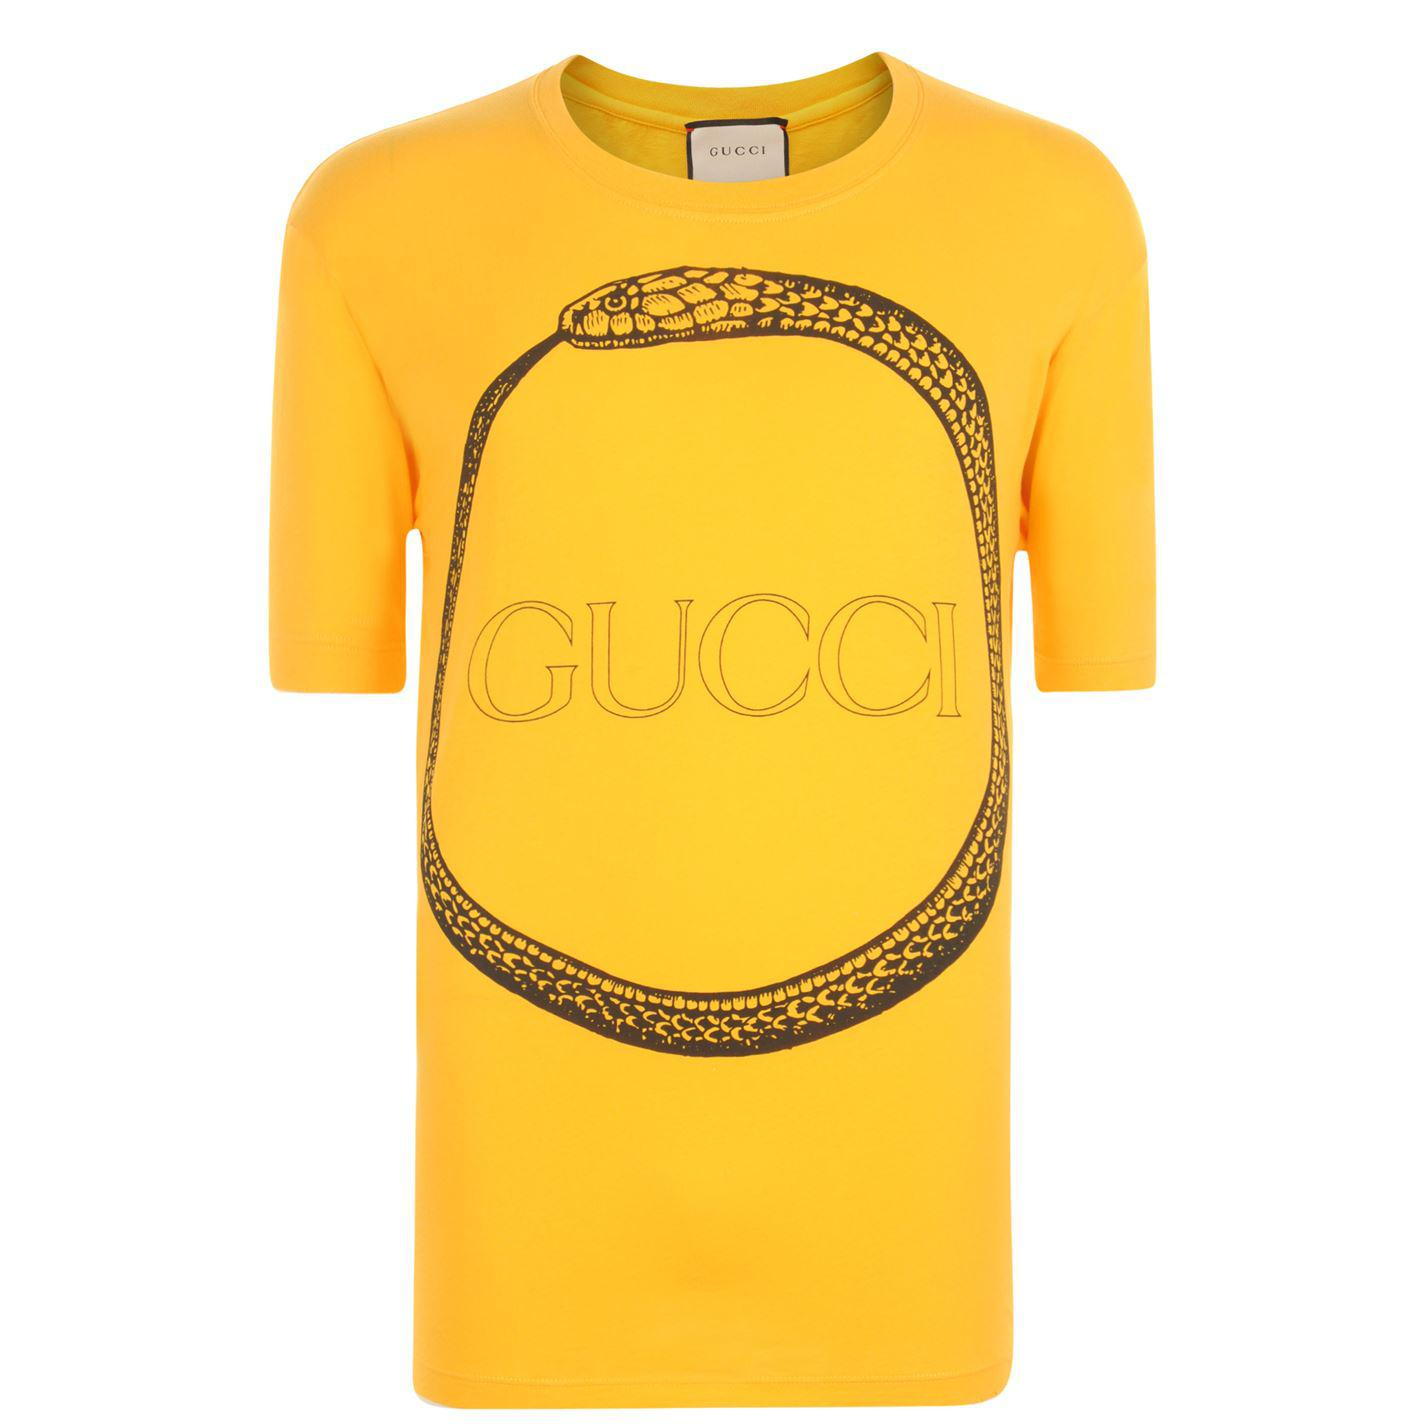 Gucci Snake Logo T Shirt in Yellow for Men - Lyst 287993a237c2